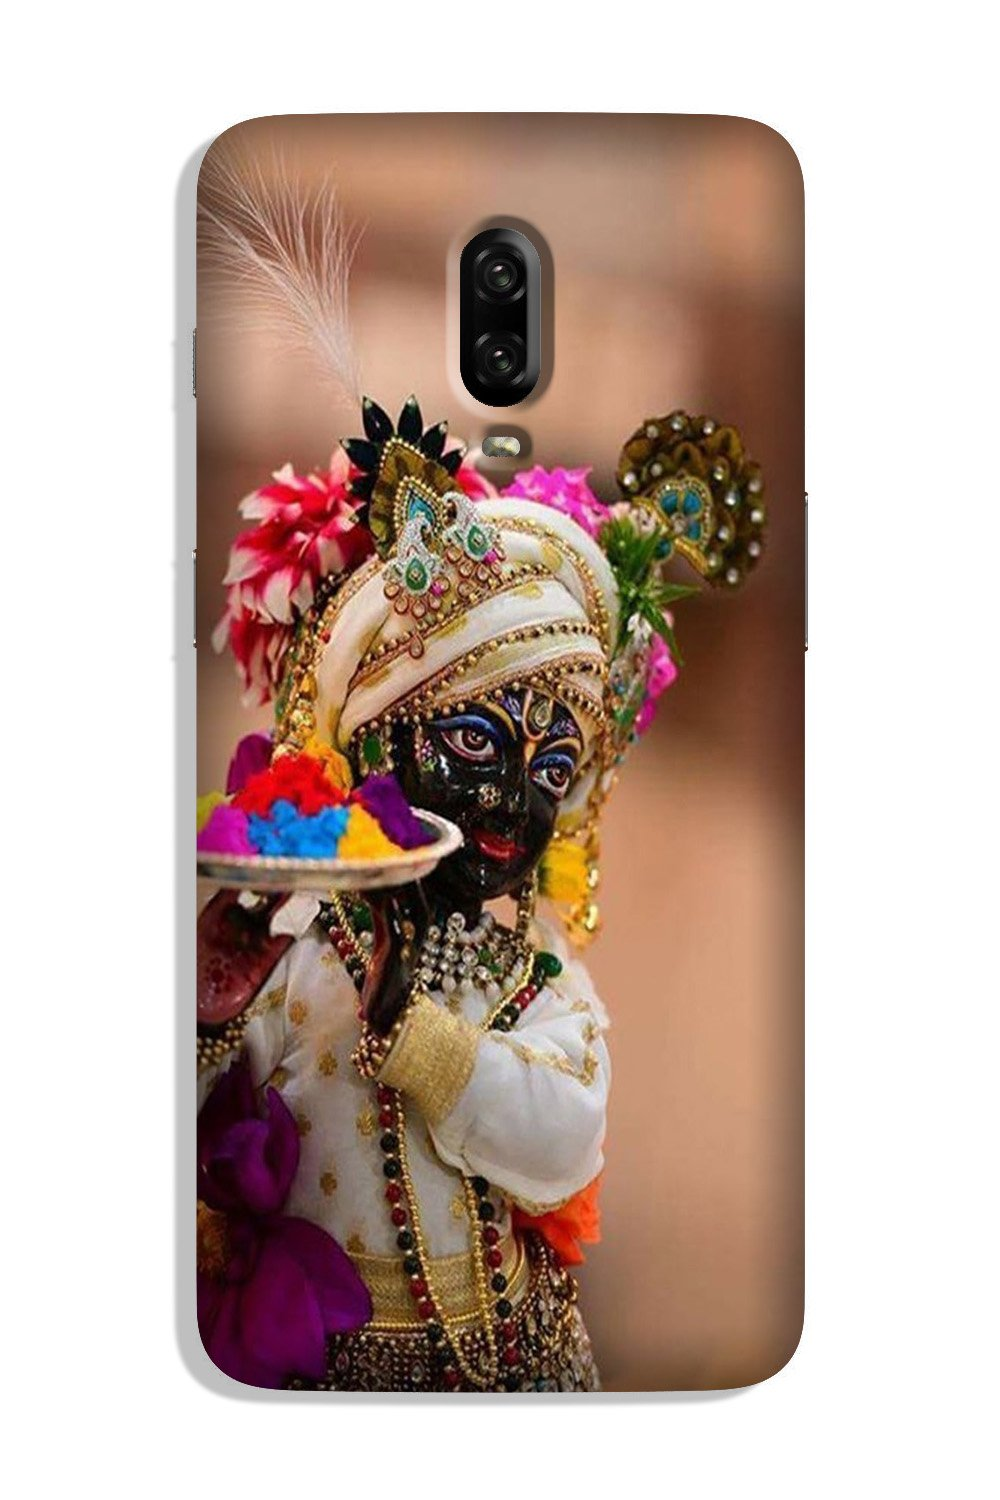 Lord Krishna2 Case for OnePlus 6T